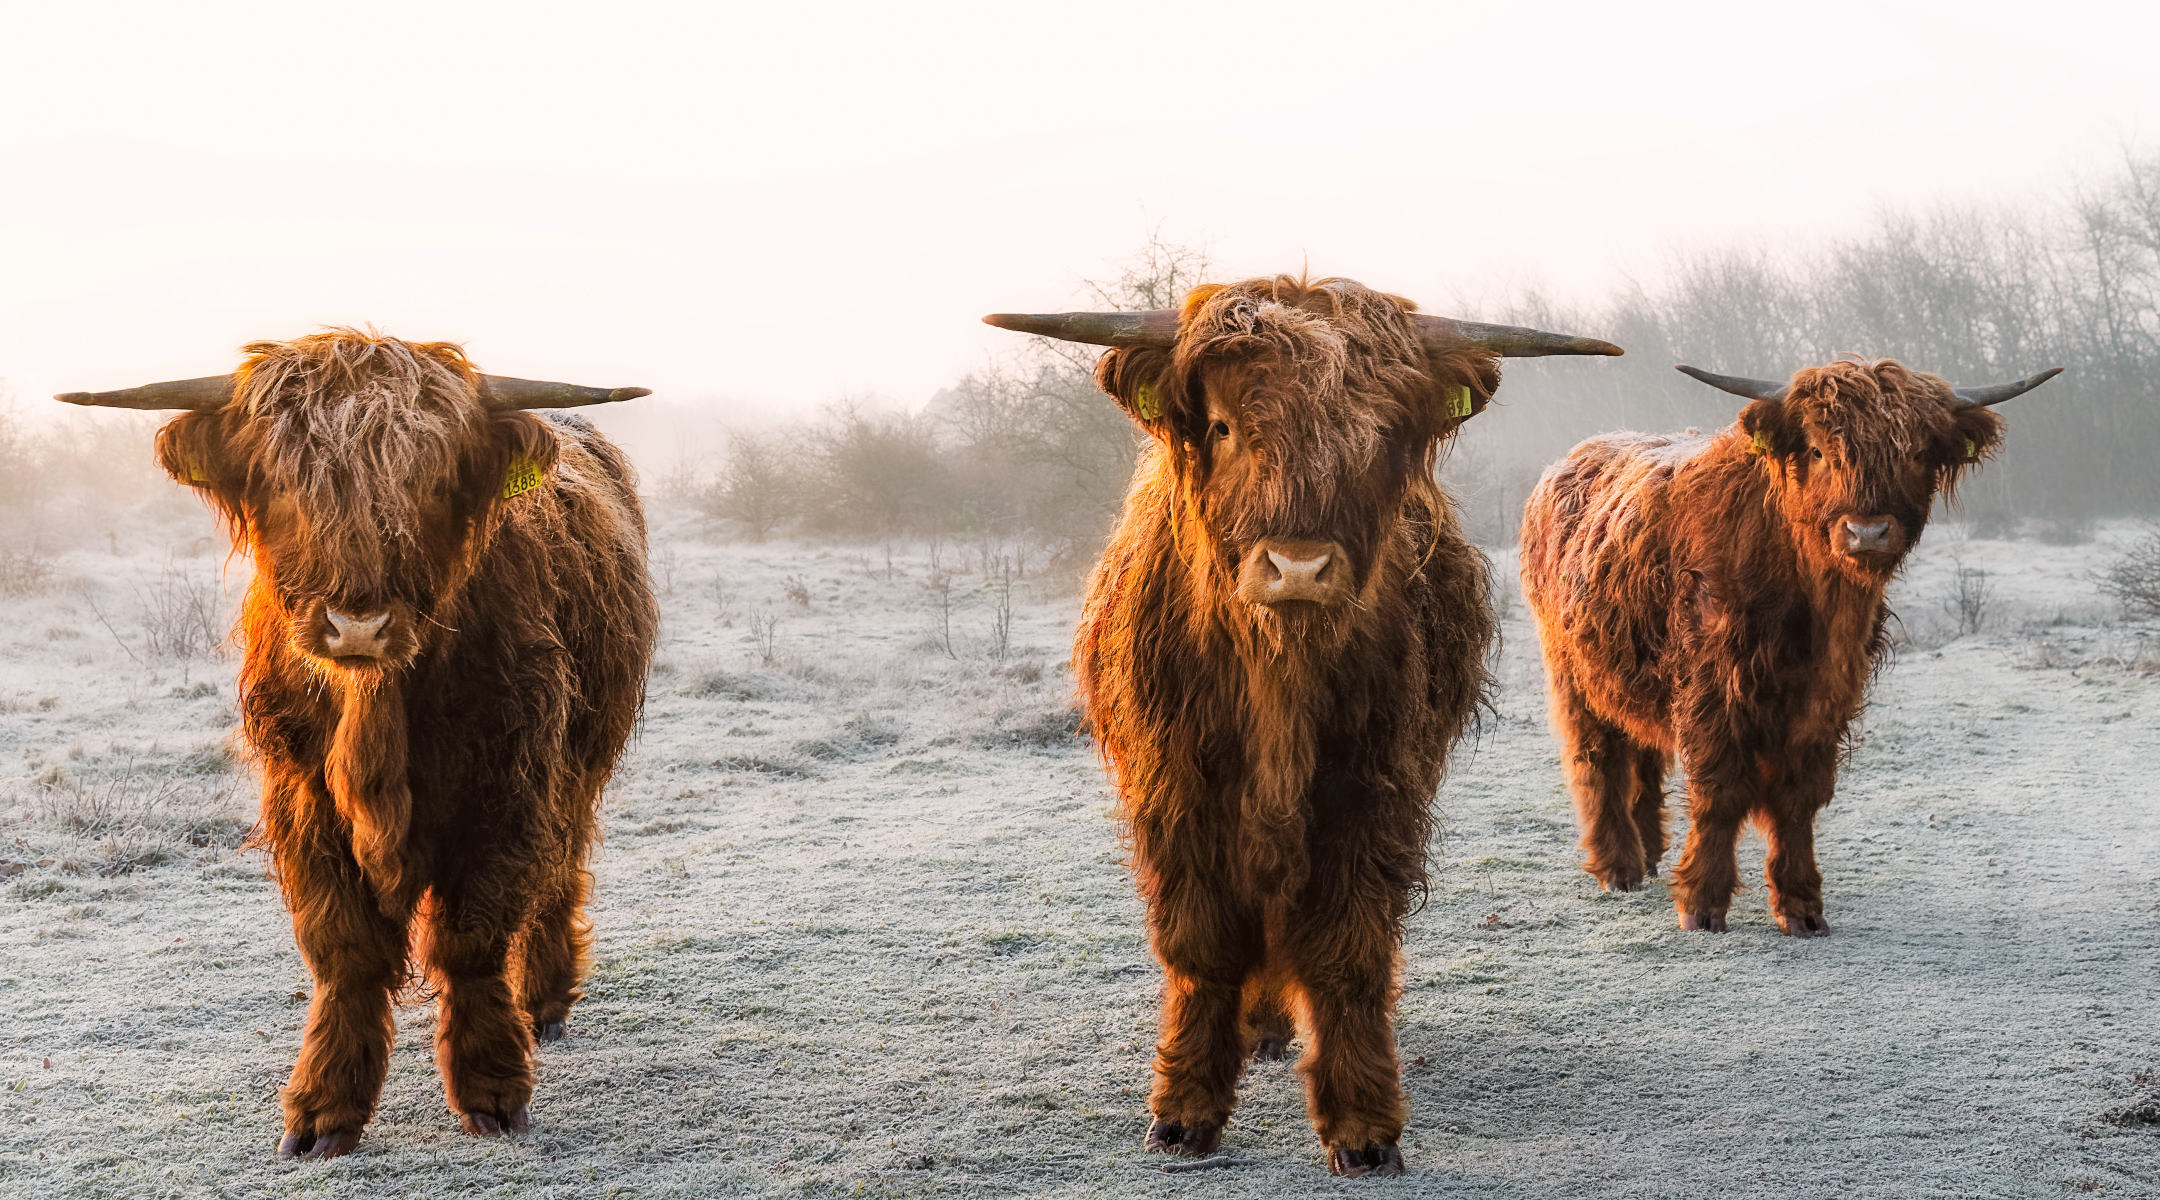 the three musketeers in winter glow